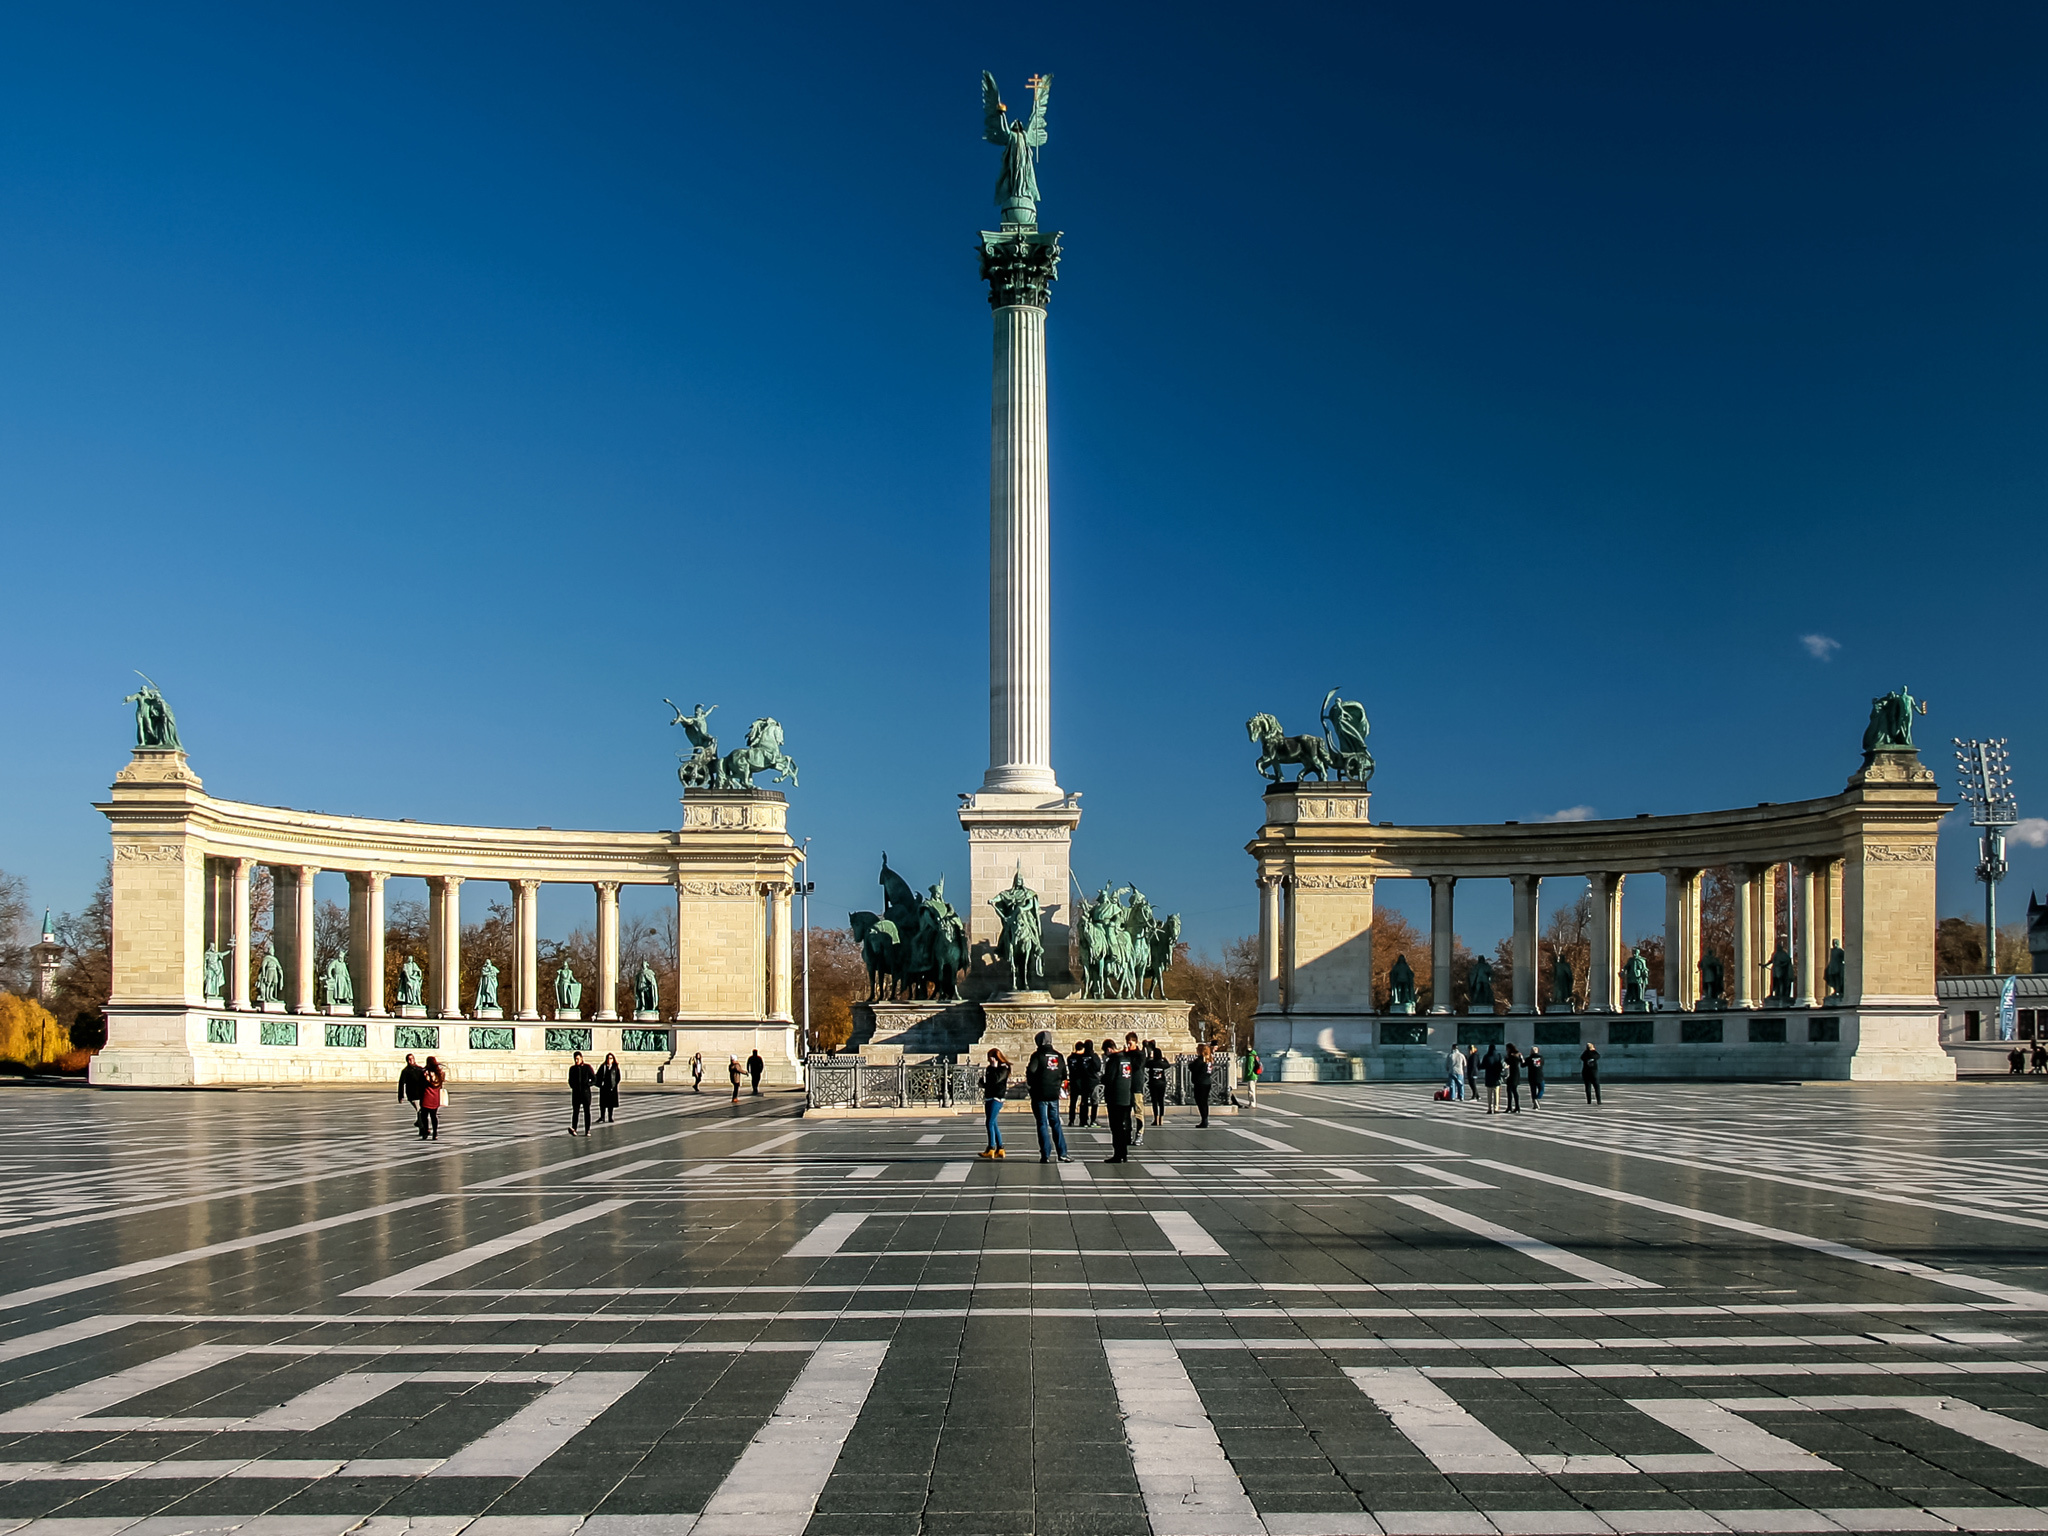 Heroes' Square monuments in central Budapest